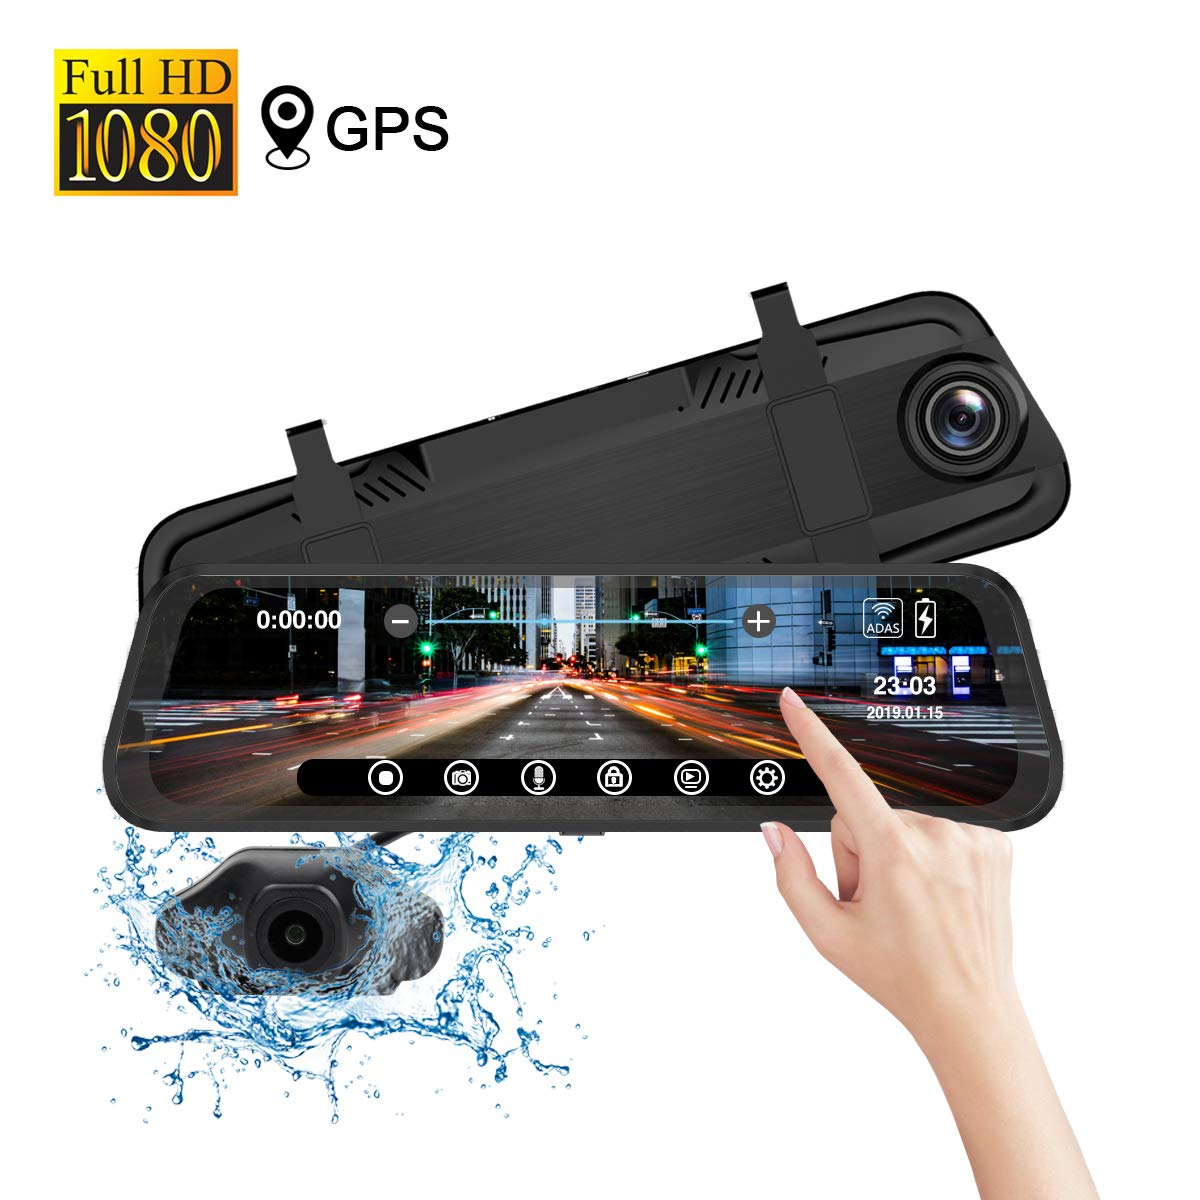 Mirror Dash Cam Front Rear Cam, 9.66 inch IPS Full Touch Screen 1080P Car Dashboard Recorder, 170°Front 140°Rear Waterproof, with GPS, ADAS, Night Vision, G-Sensor, Parking Monitor, Motion Detect